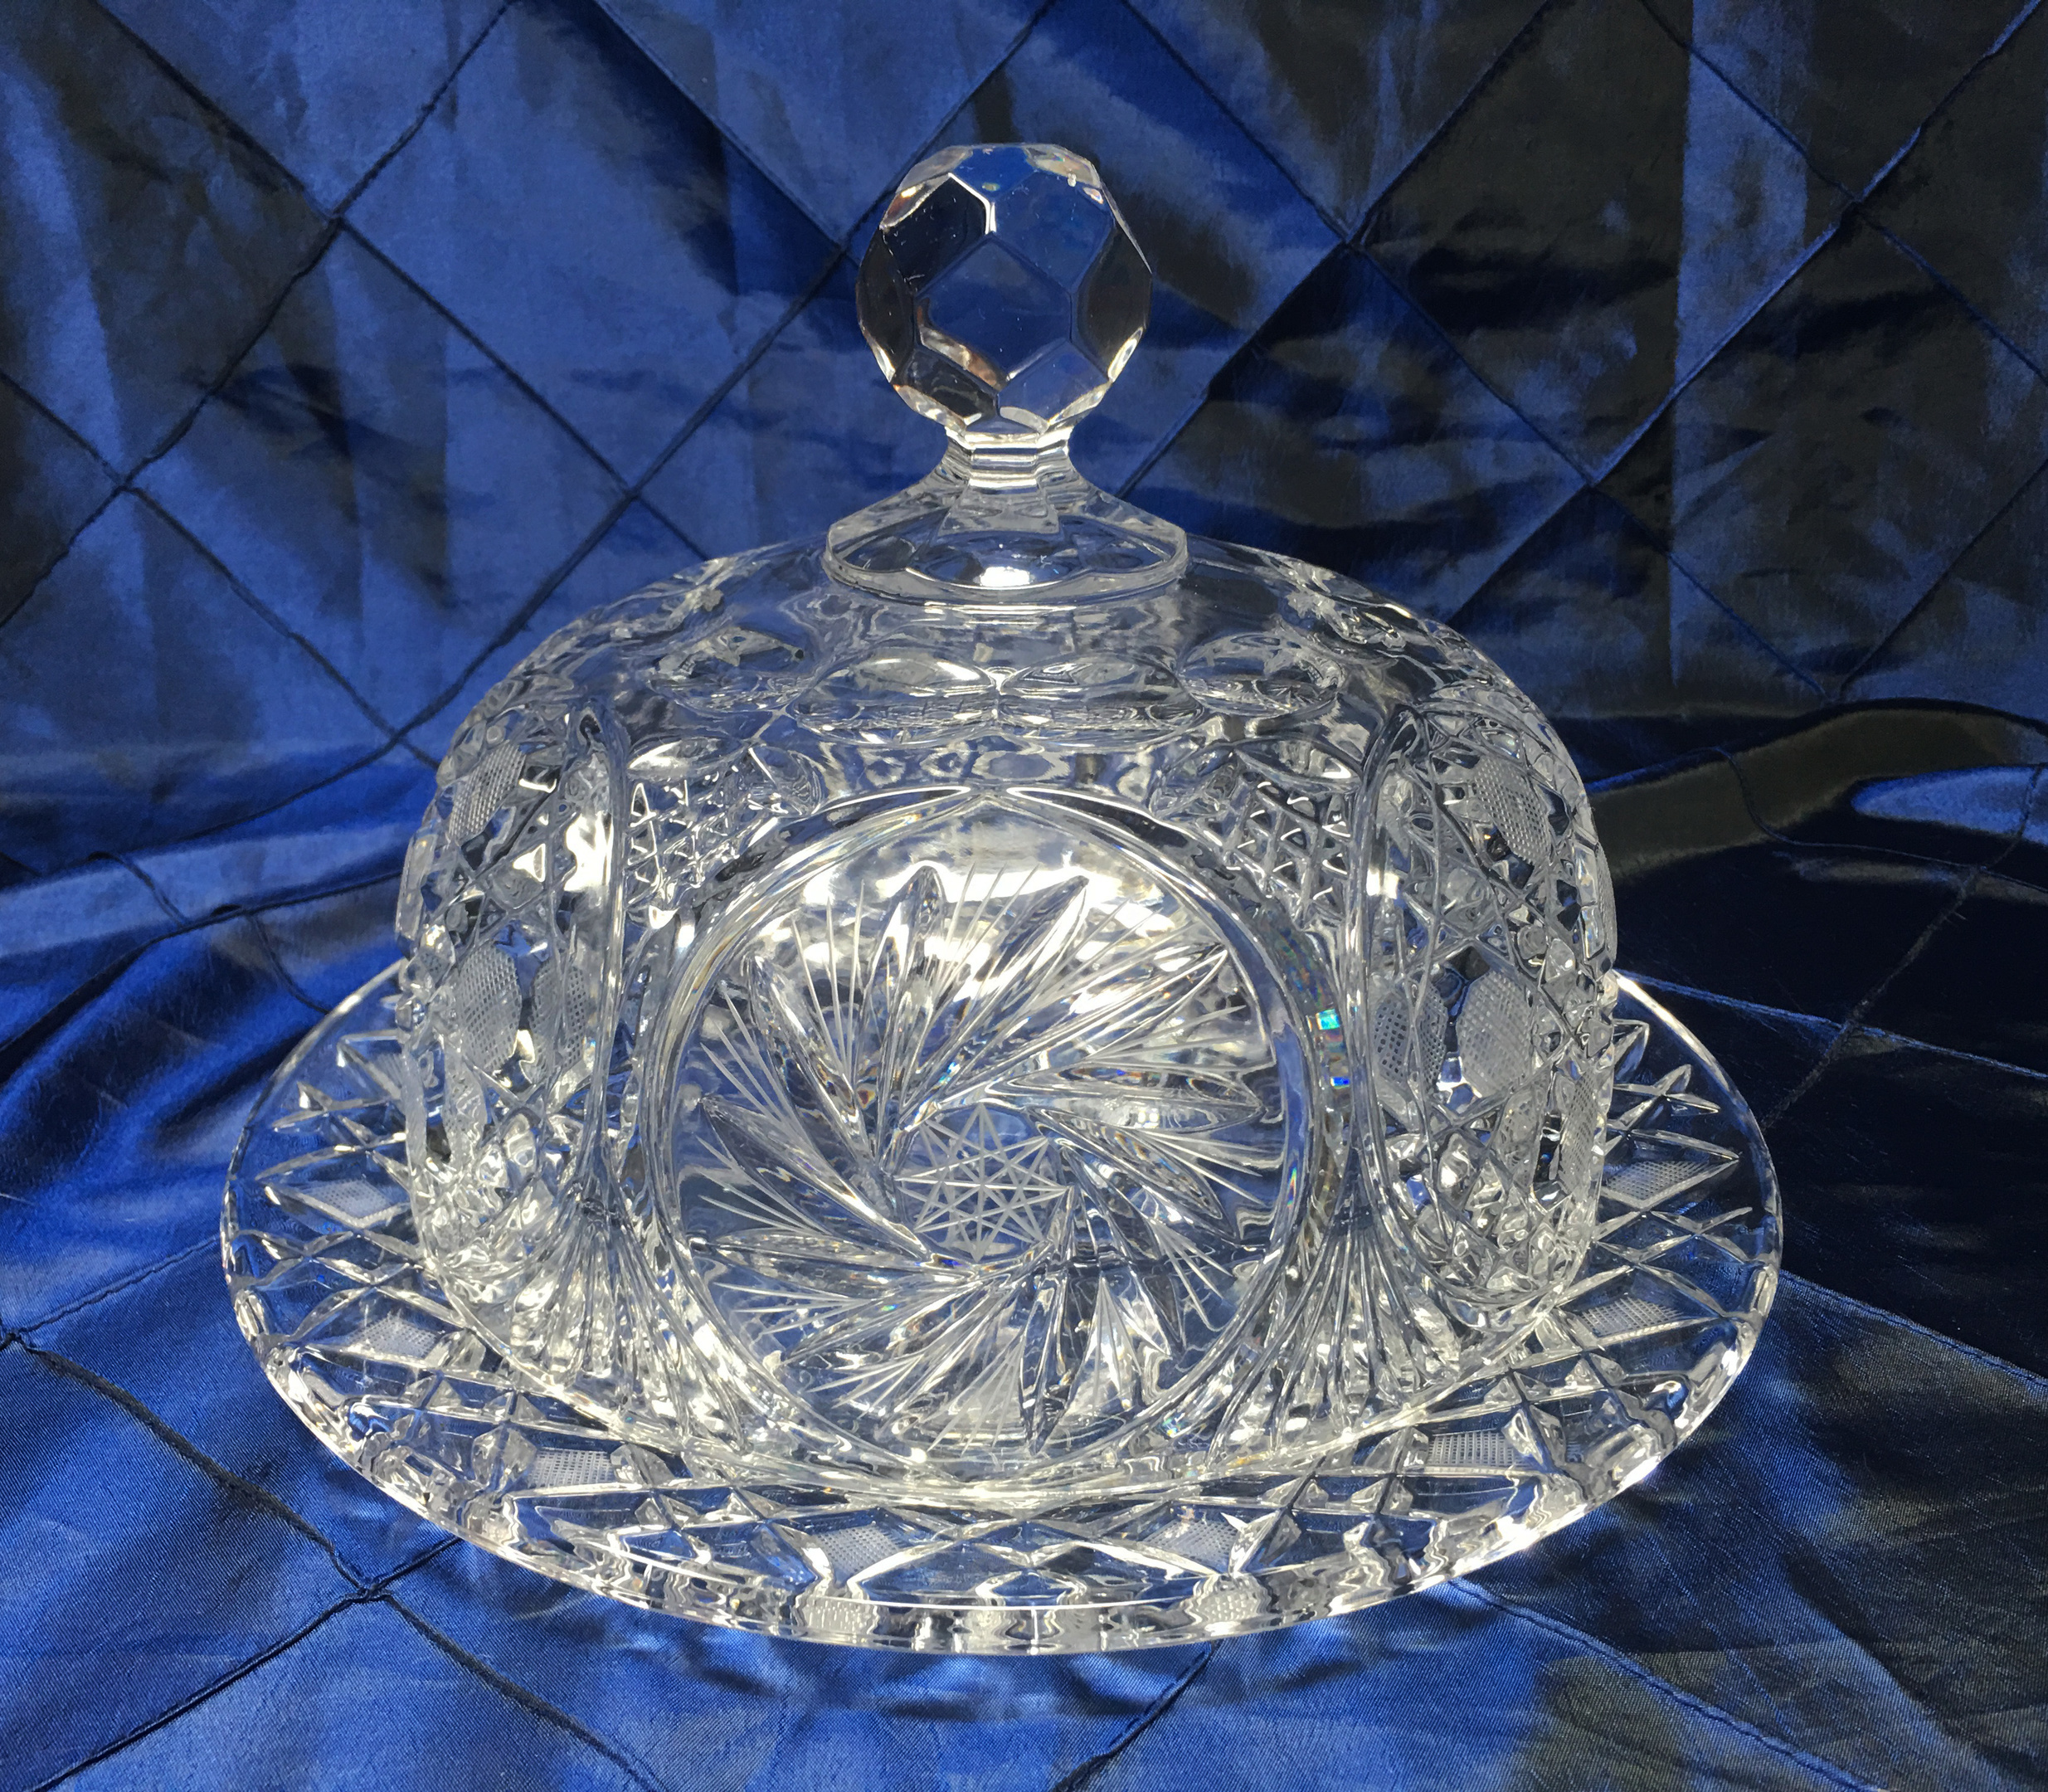 Cut Crystal Cake Plate and Dome - Possible American Brilliant Period? | Collectors Weekly & Cut Crystal Cake Plate and Dome - Possible American Brilliant Period ...